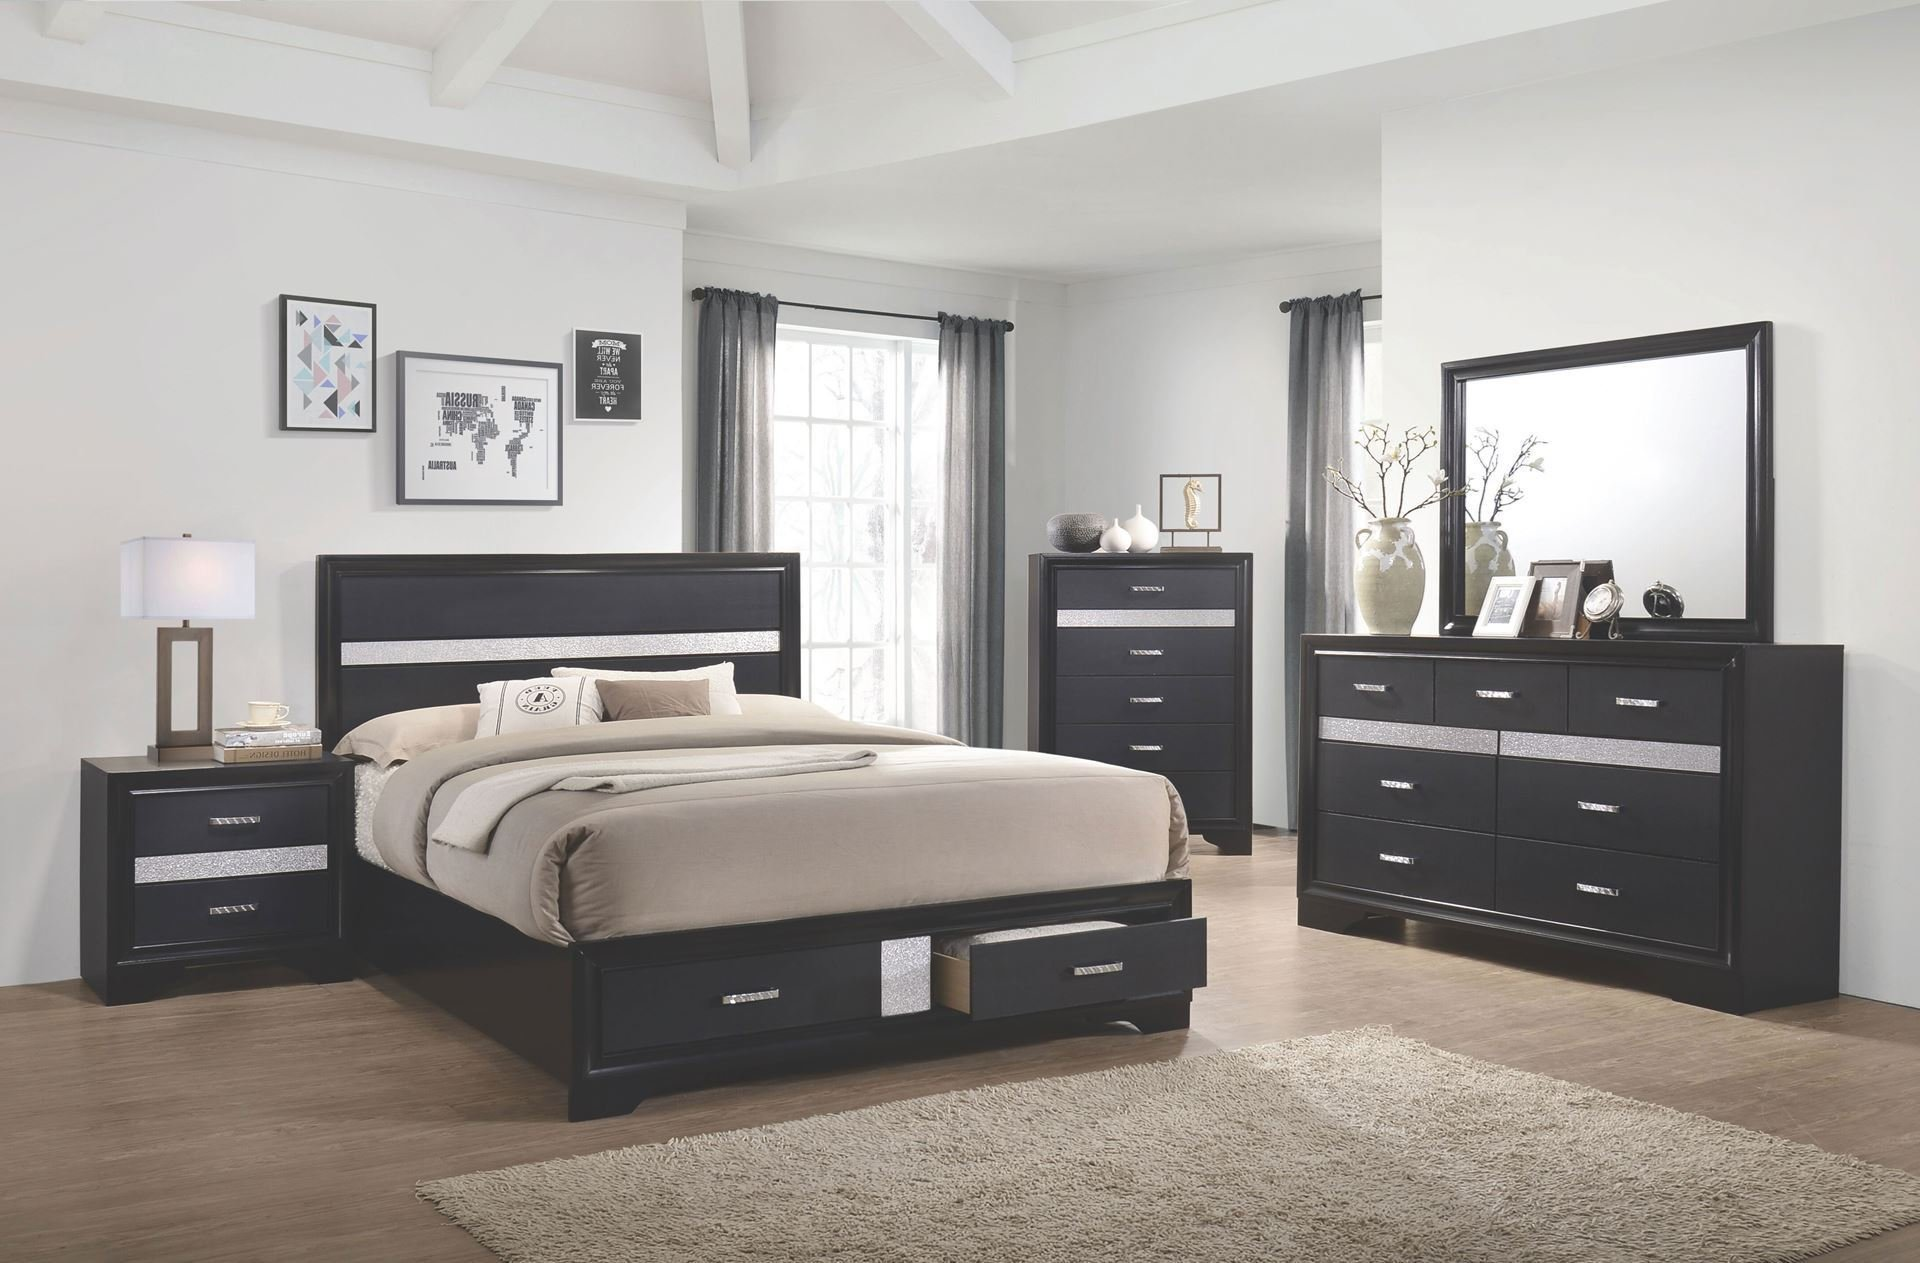 Best Amalia Bedroom Set Walker Furniture Las Vegas With Pictures